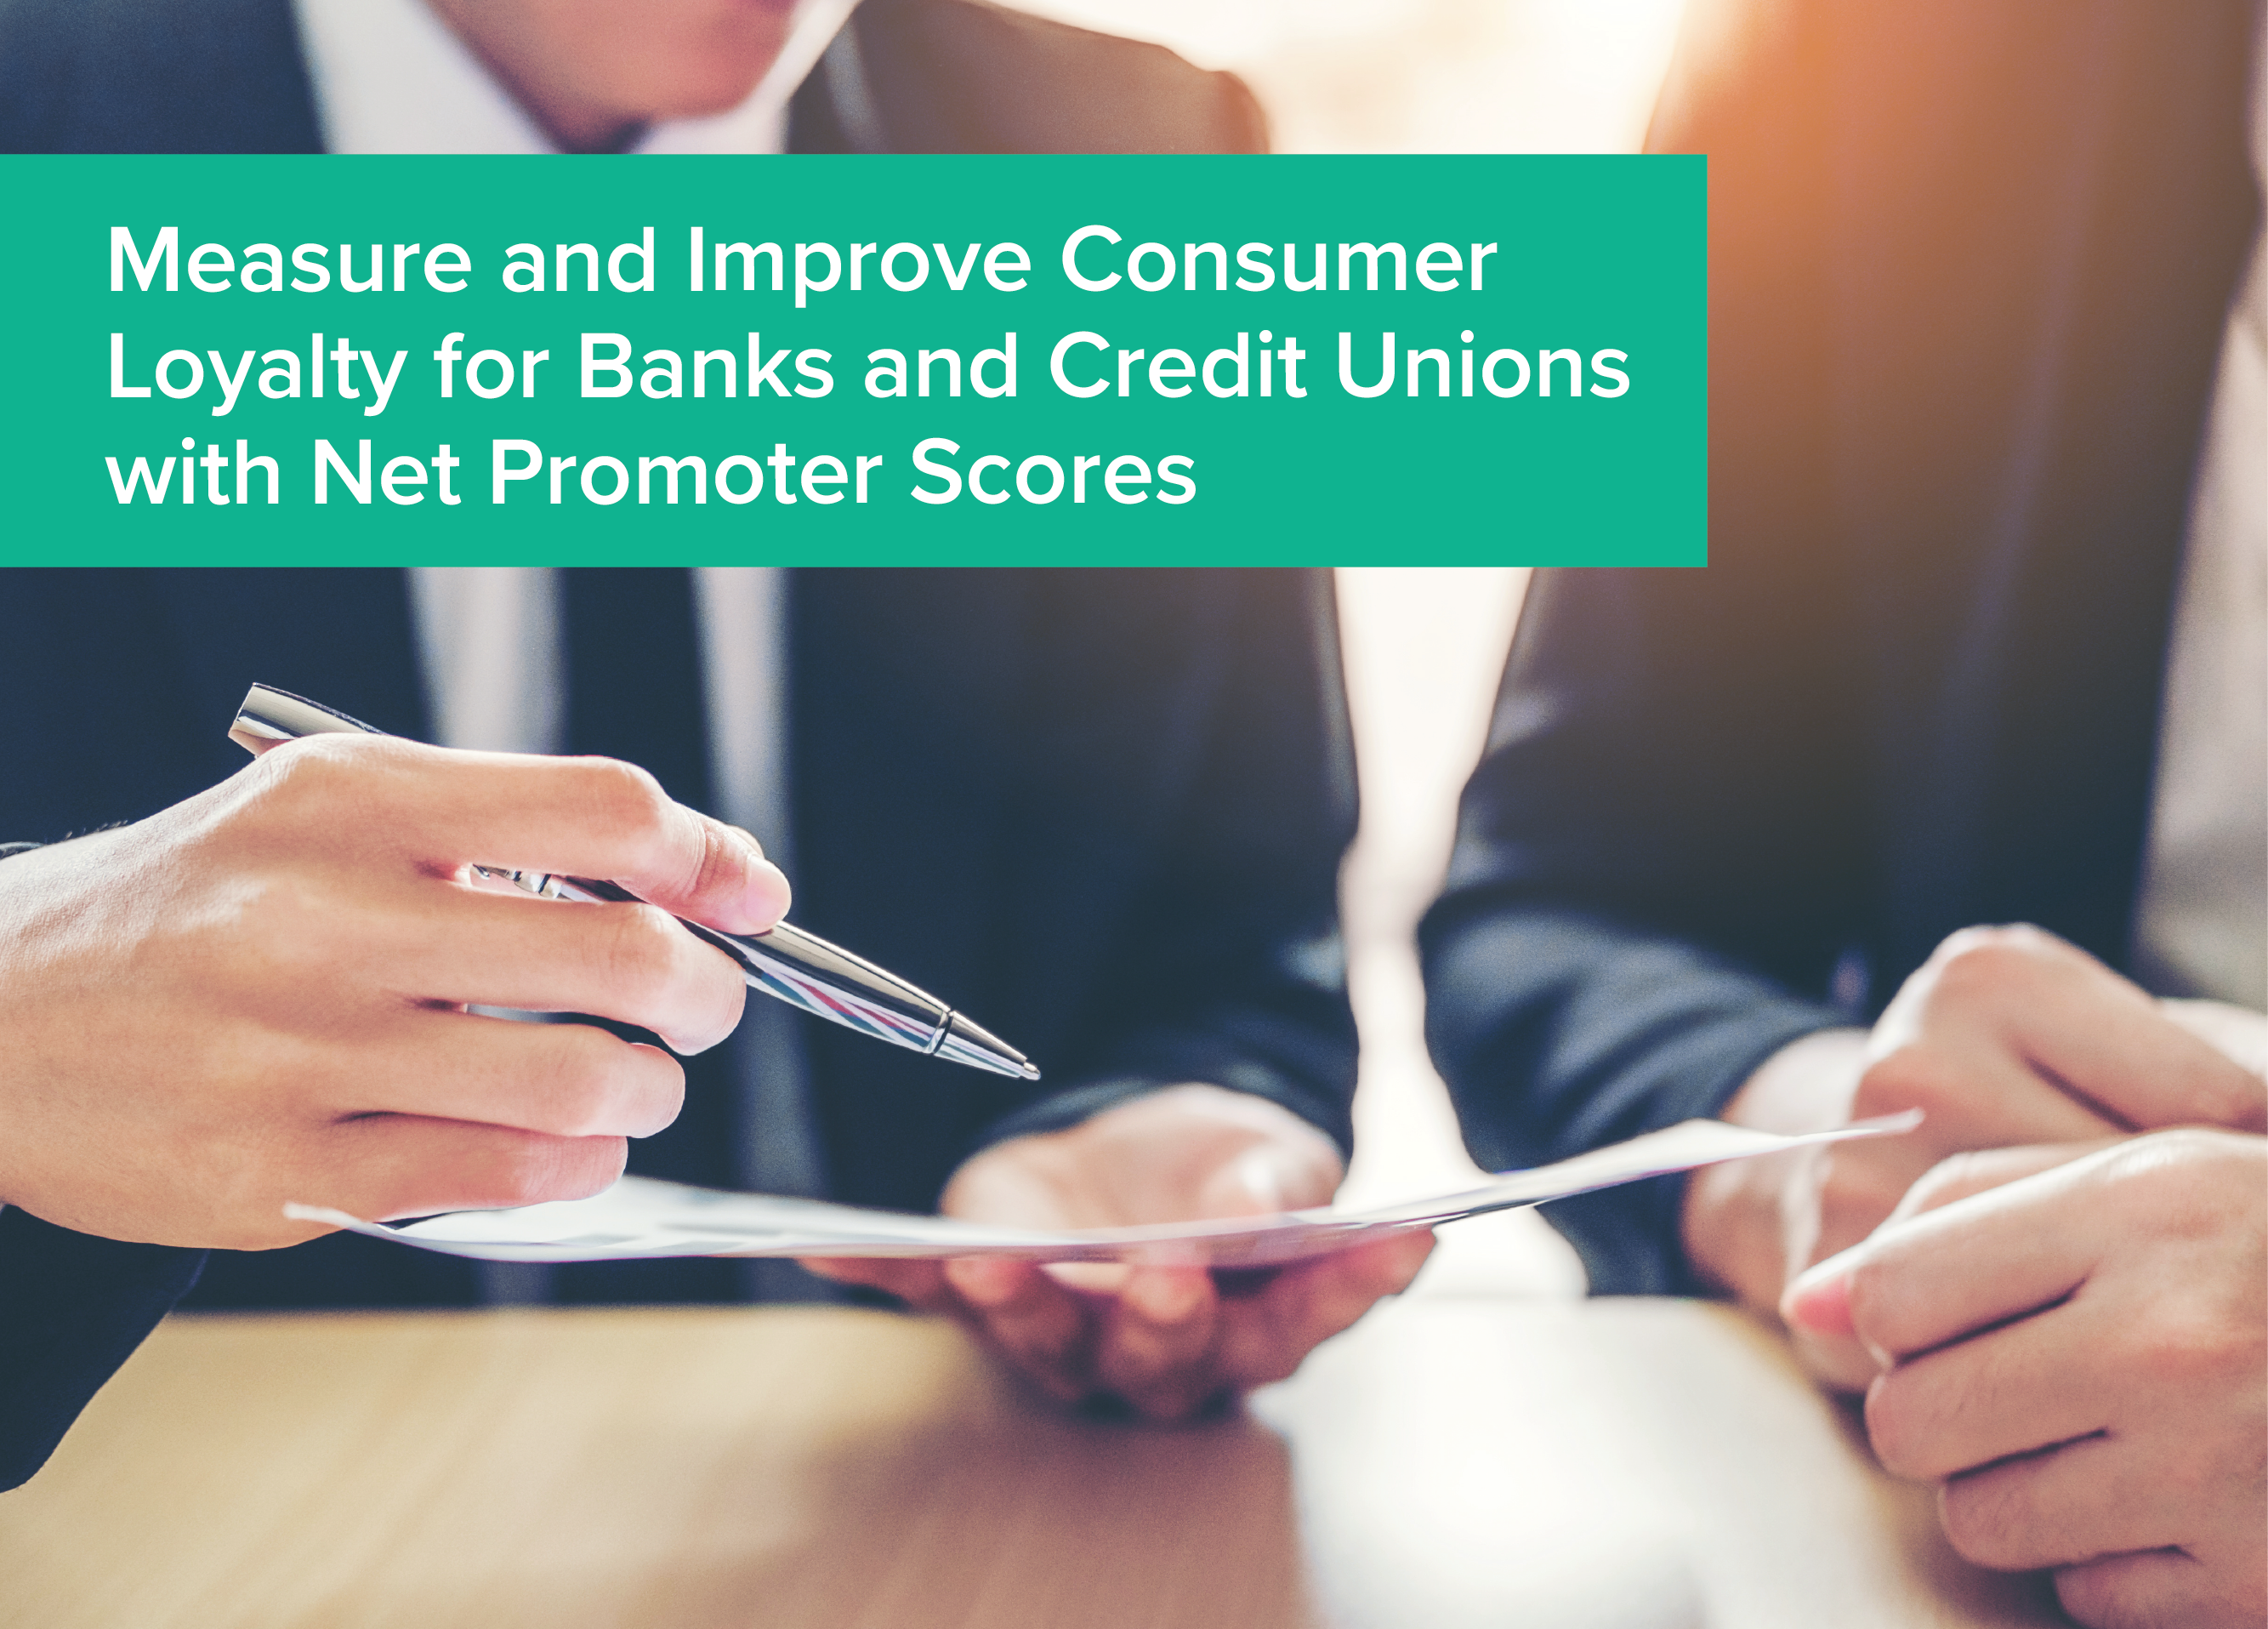 Measure and Improve Consumer Loyalty for Banks and Credit Unions with Net Promoter Scores